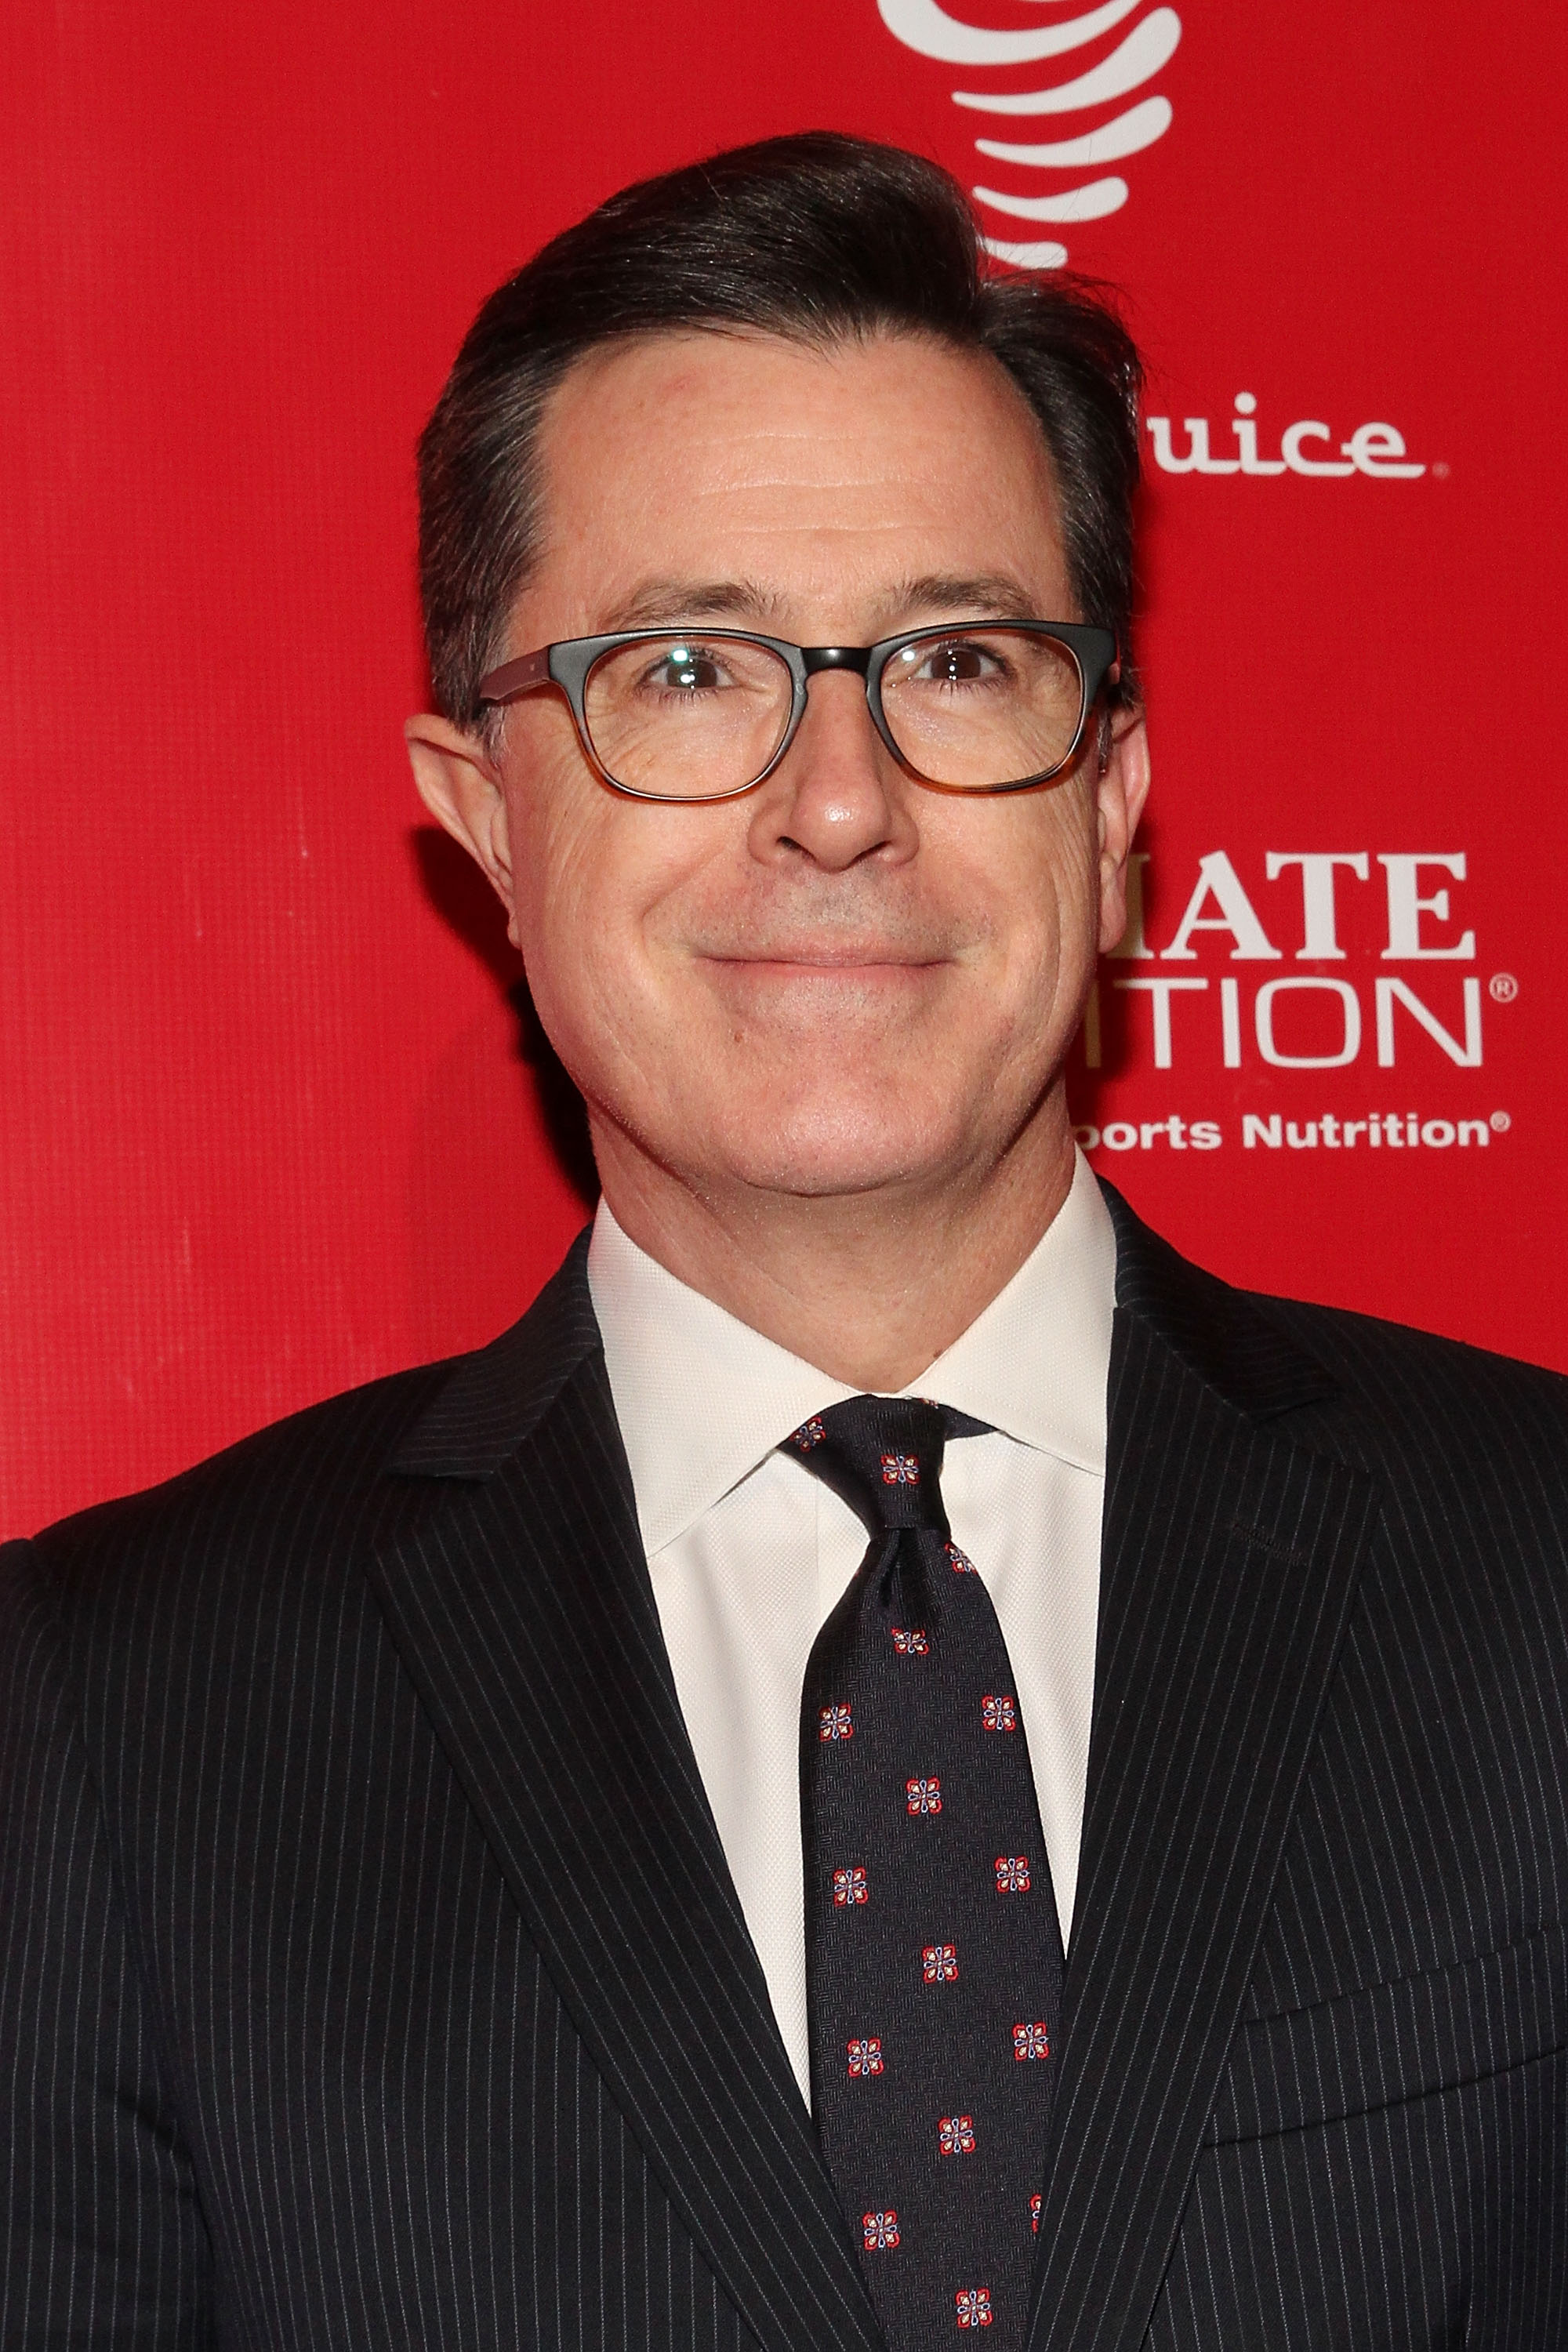 CBS tweets that Stephen Colbert will take over 'The Late Show' following David Letterman's retirement.